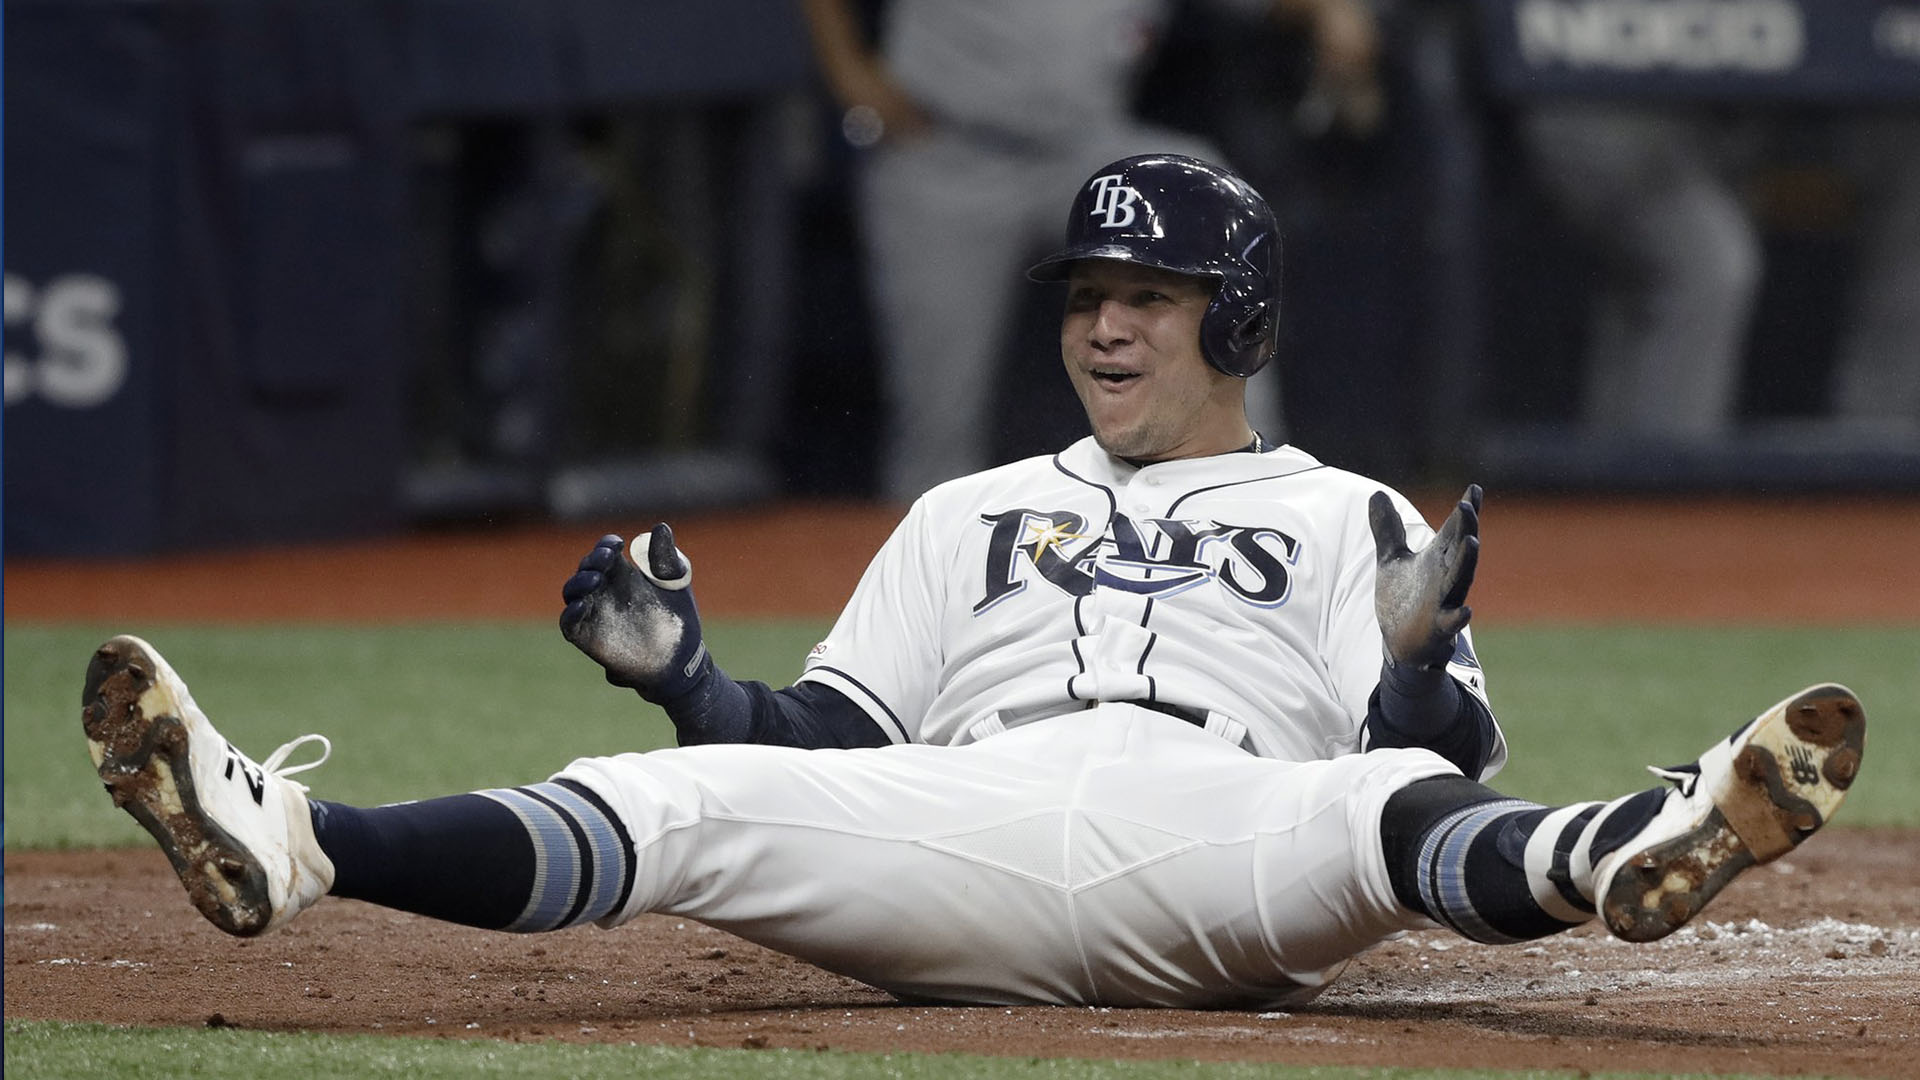 Rays win small crowd_1559097893665.jpg.jpg